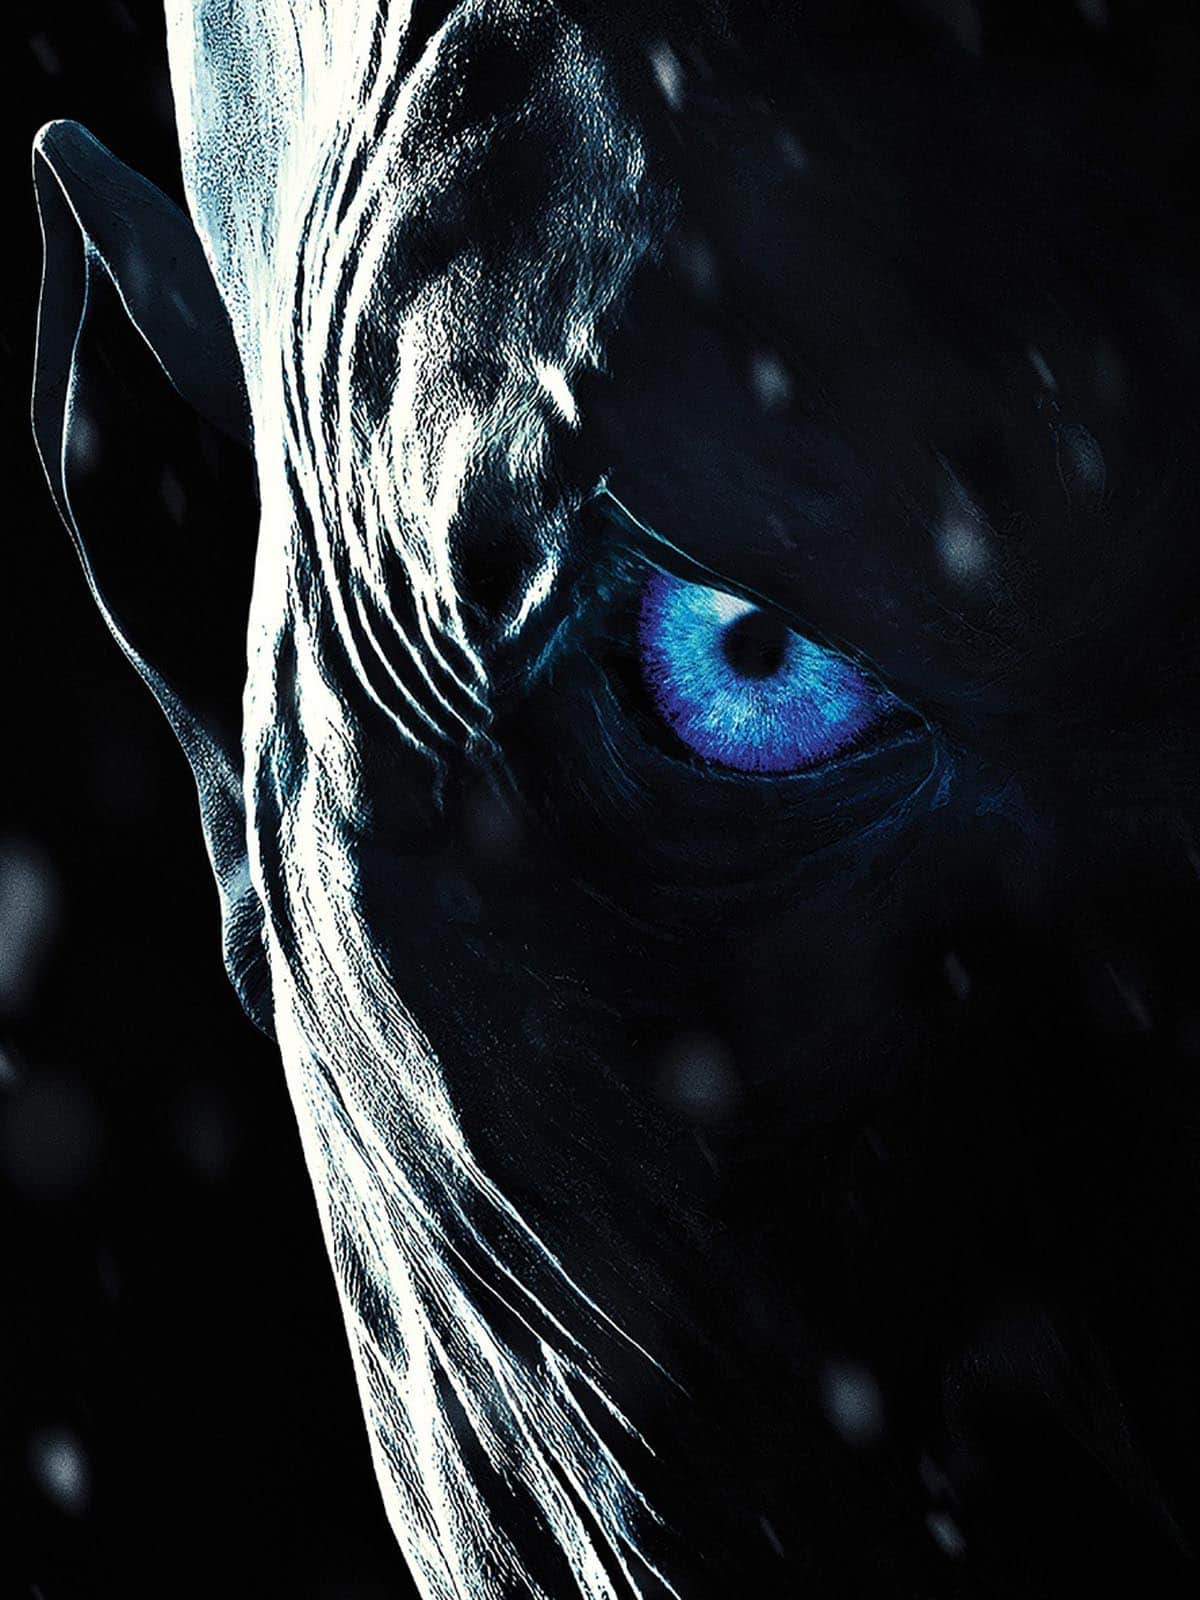 Game Of Thrones Wallpaper Hd Android Full High Quality - Game Of Thrones - HD Wallpaper